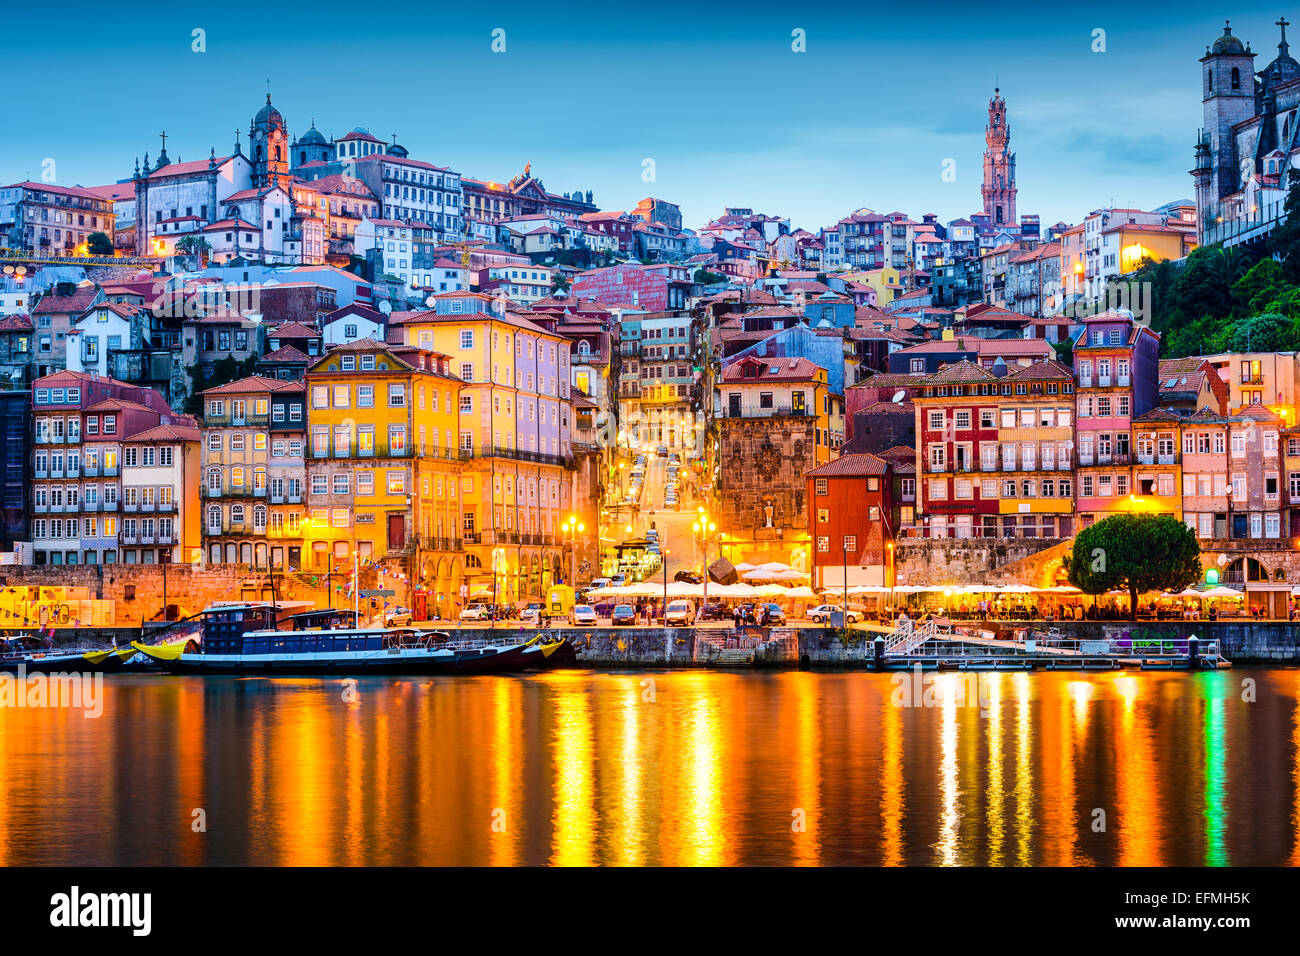 Porto, Portugal  old city skyline from across the Douro River. - Stock Image